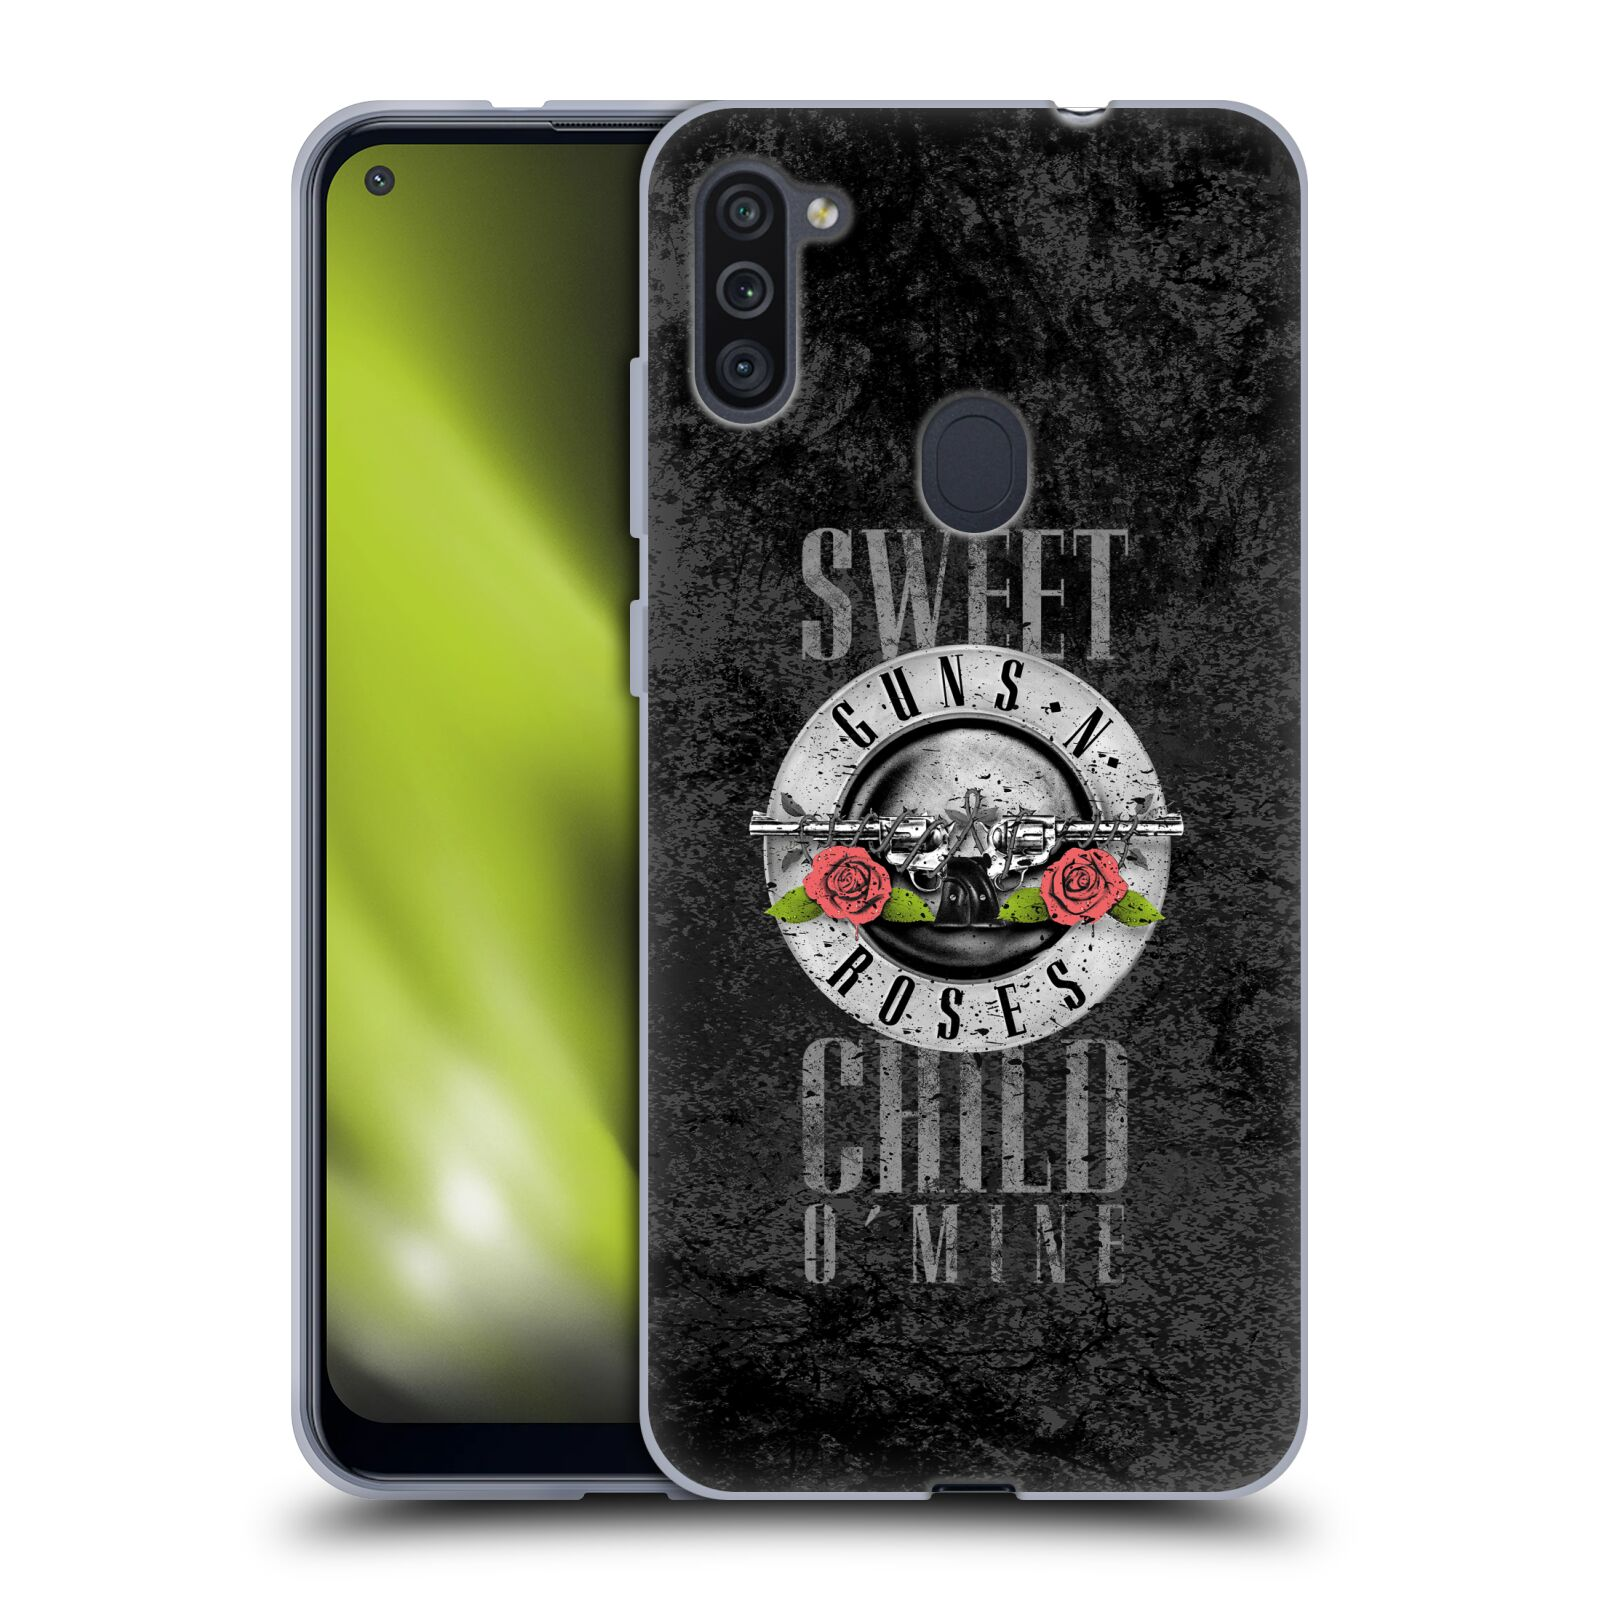 Silikonové pouzdro na mobil Samsung Galaxy M11 - Head Case - Guns N' Roses - Sweet Child